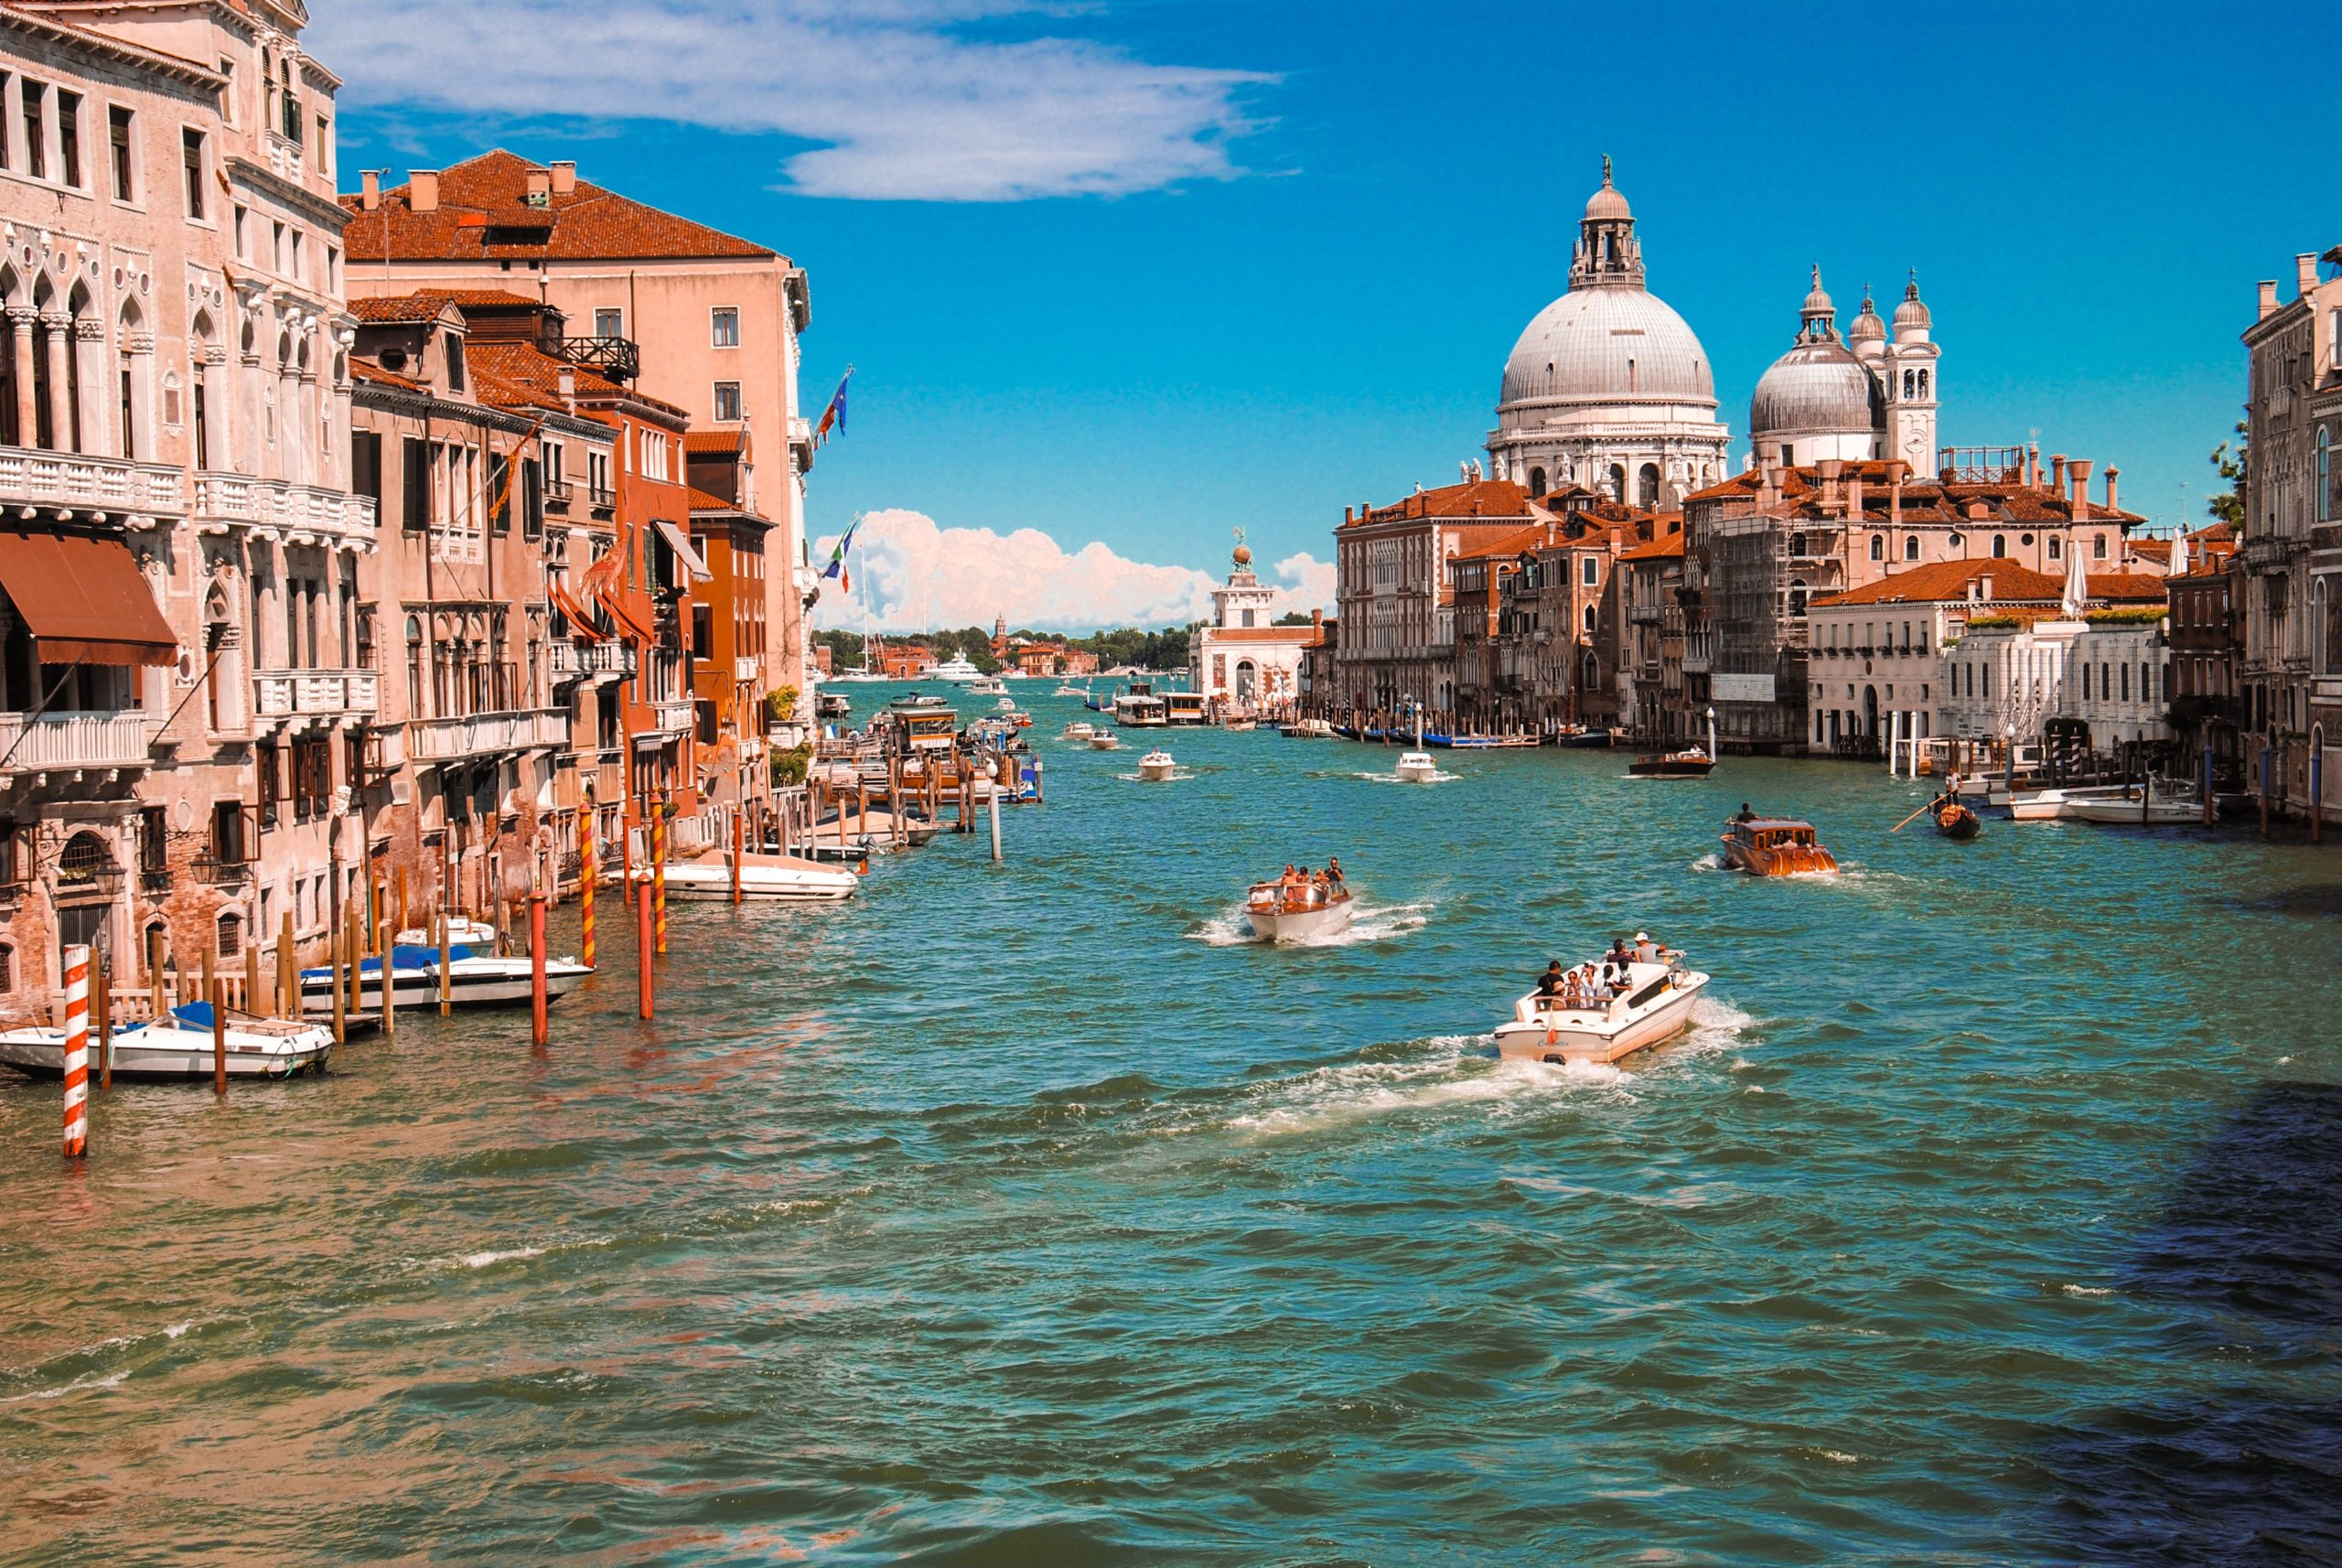 Venice – Why so Unique and Special?